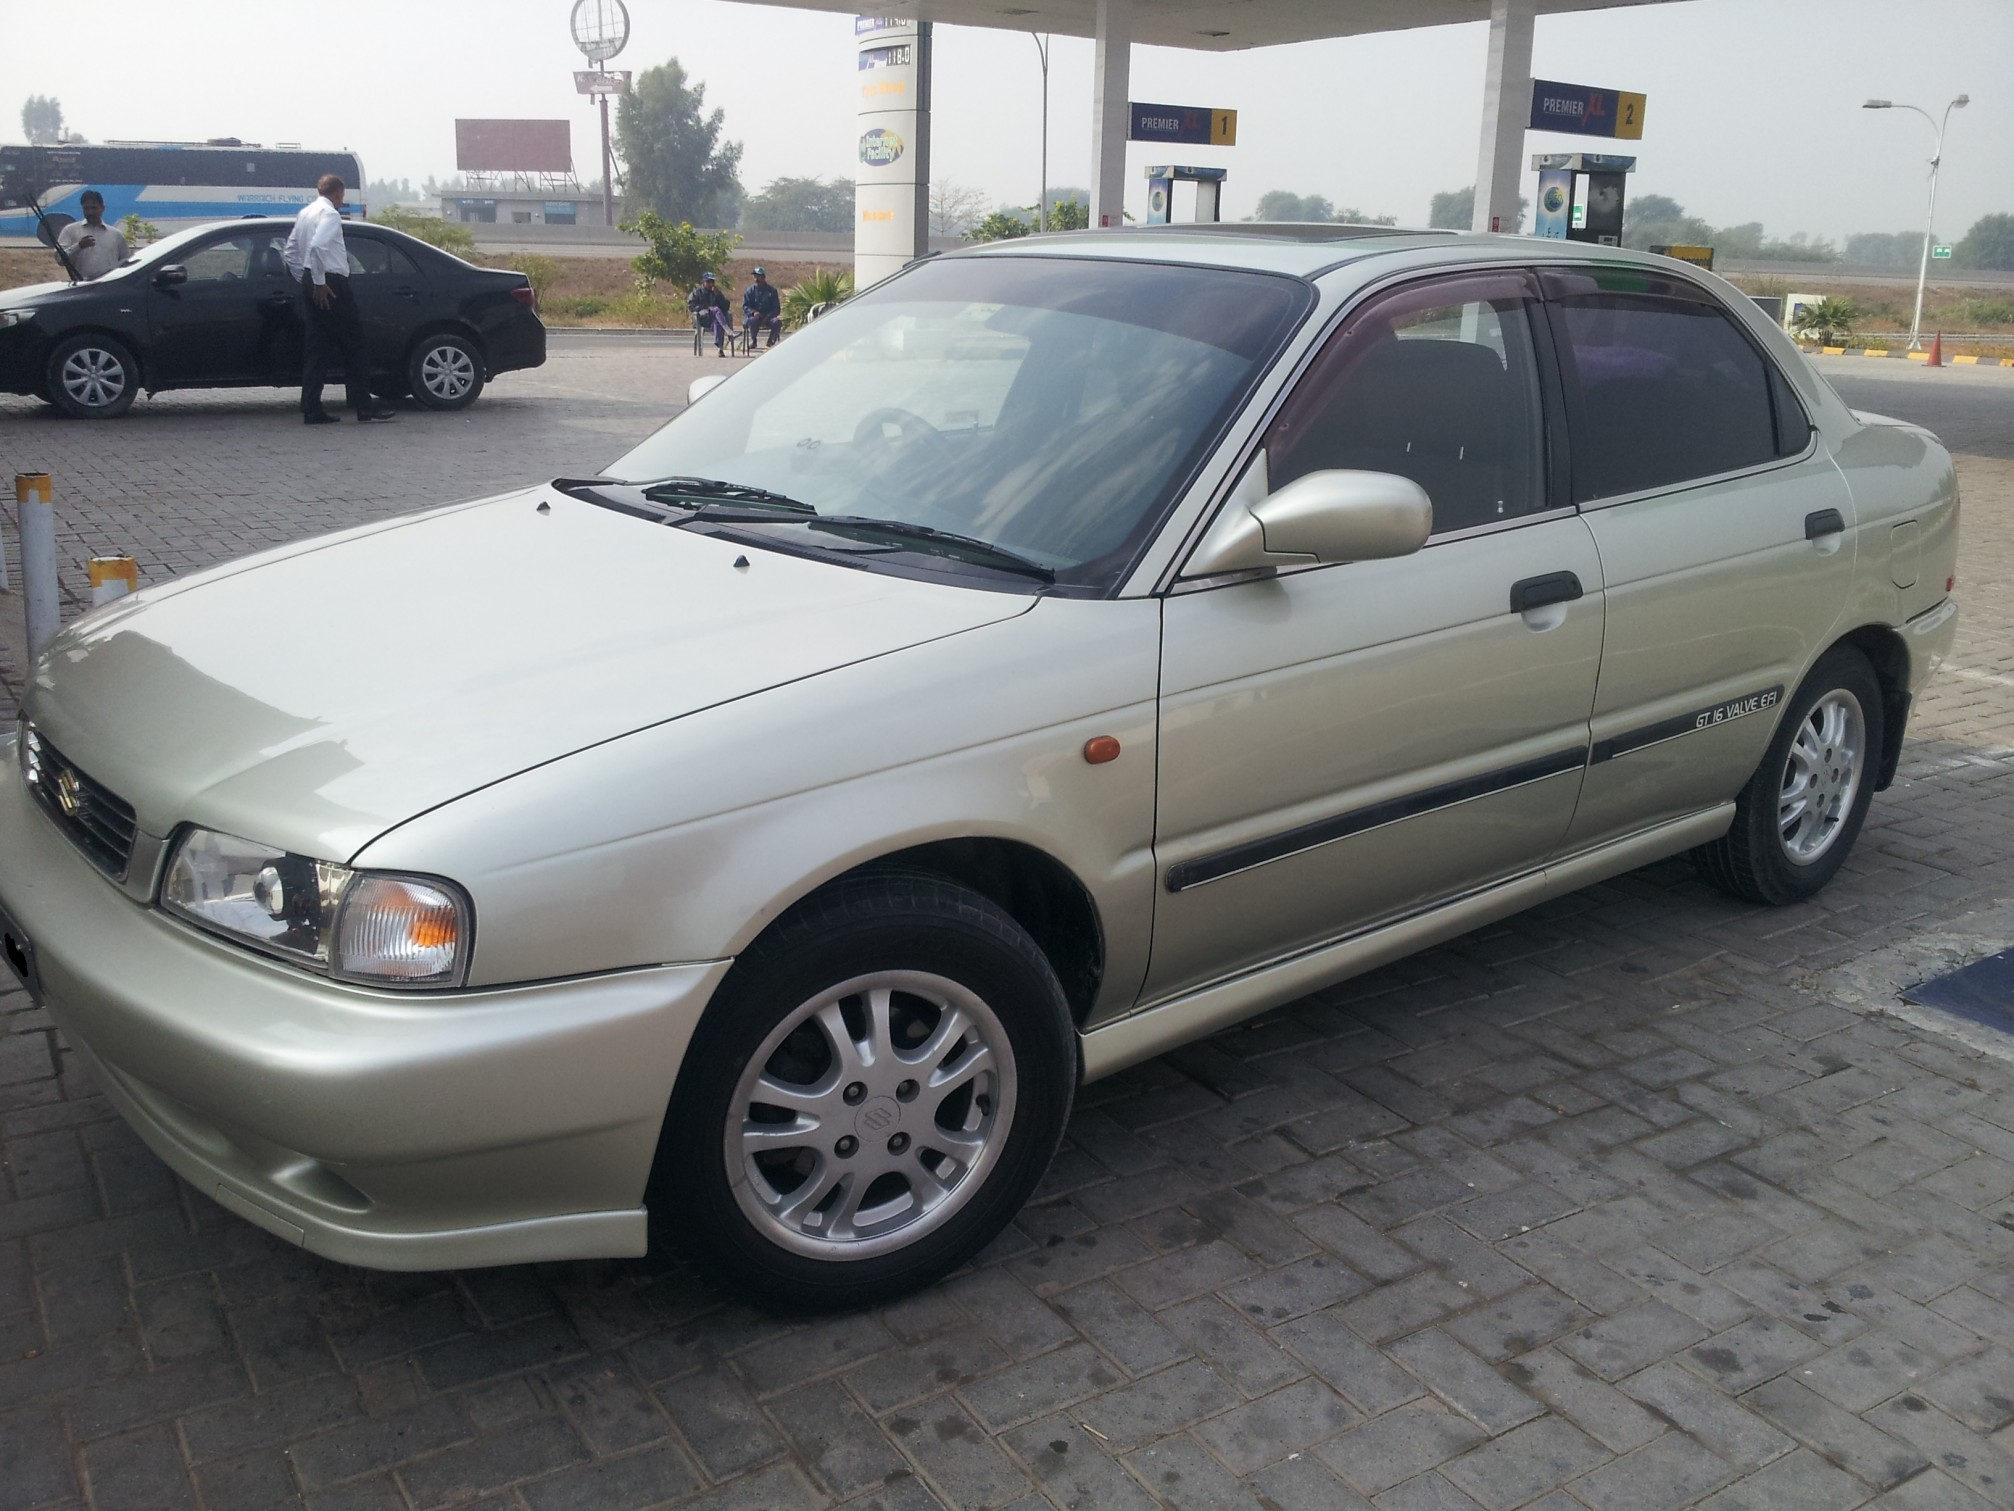 2001 Suzuki Baleno GTi for Sale